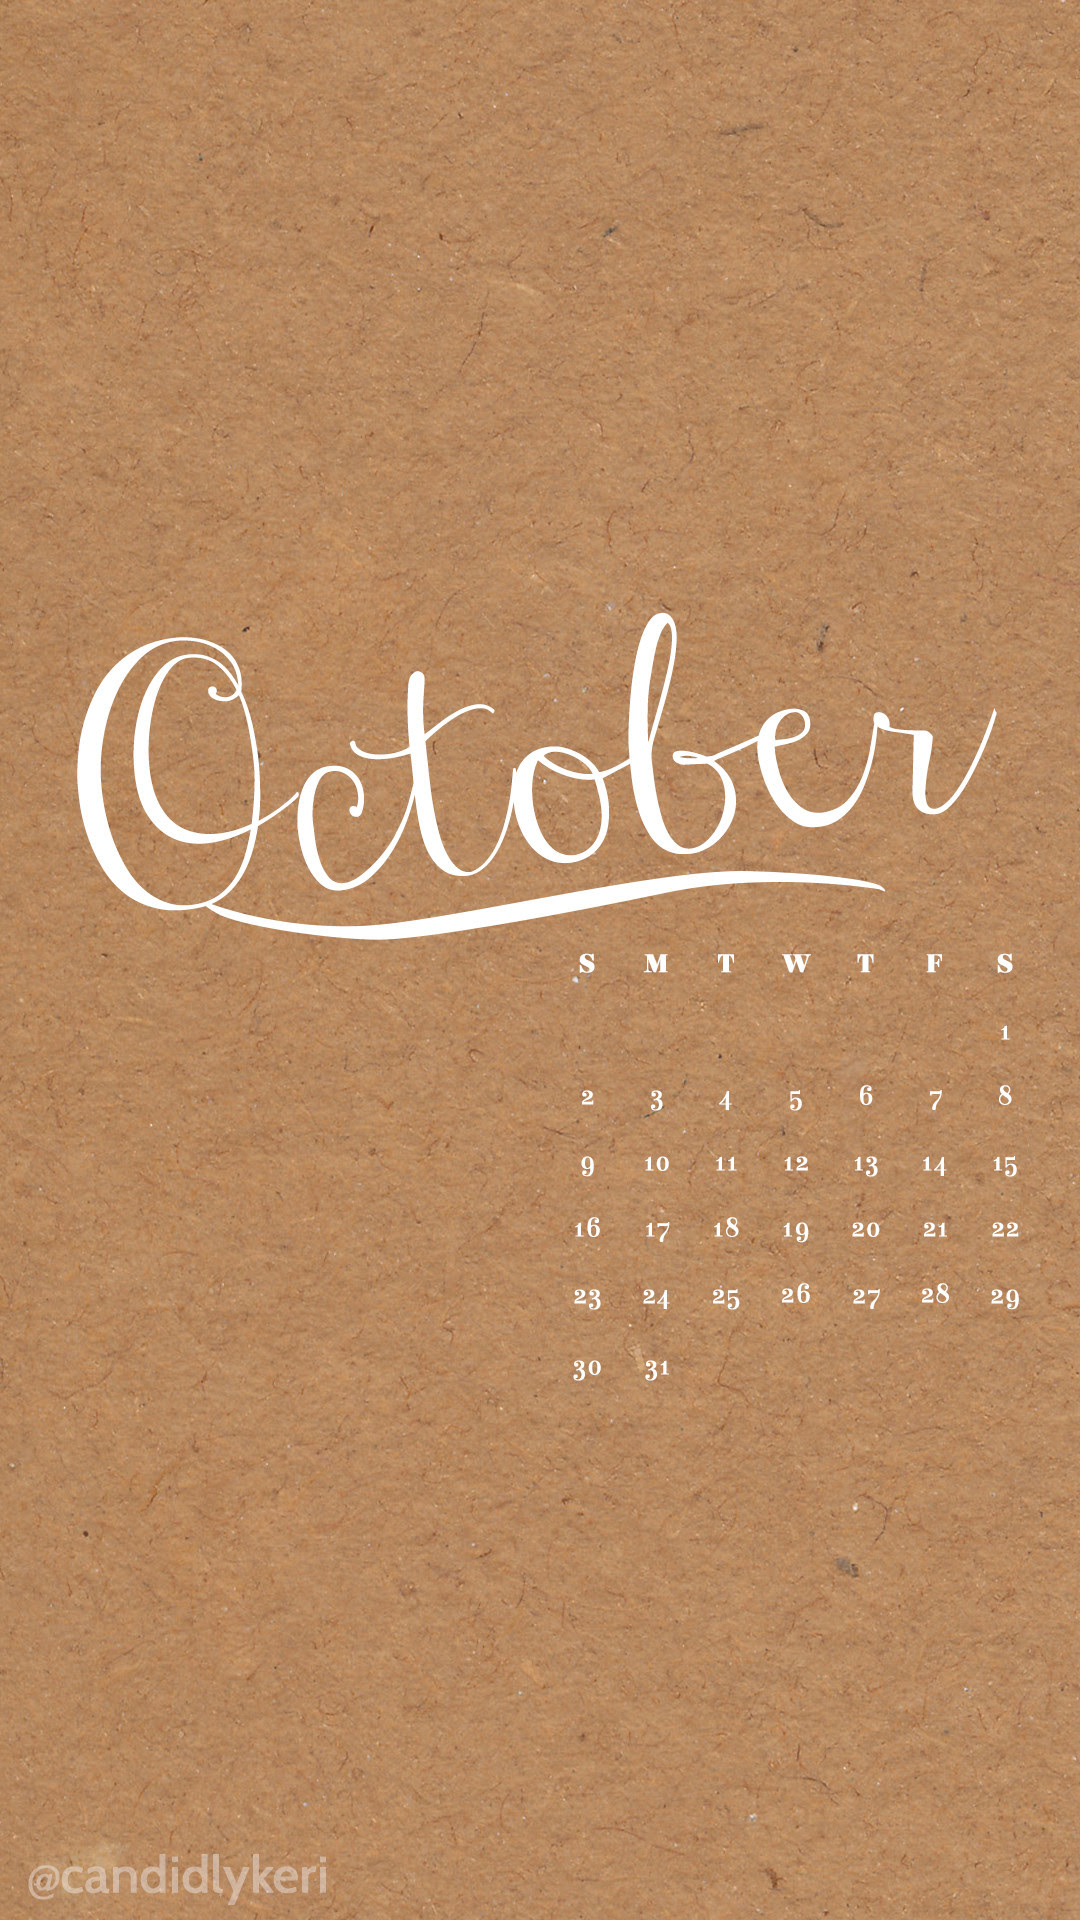 Desktop Wallpapers Calendar October 2018 57+ images